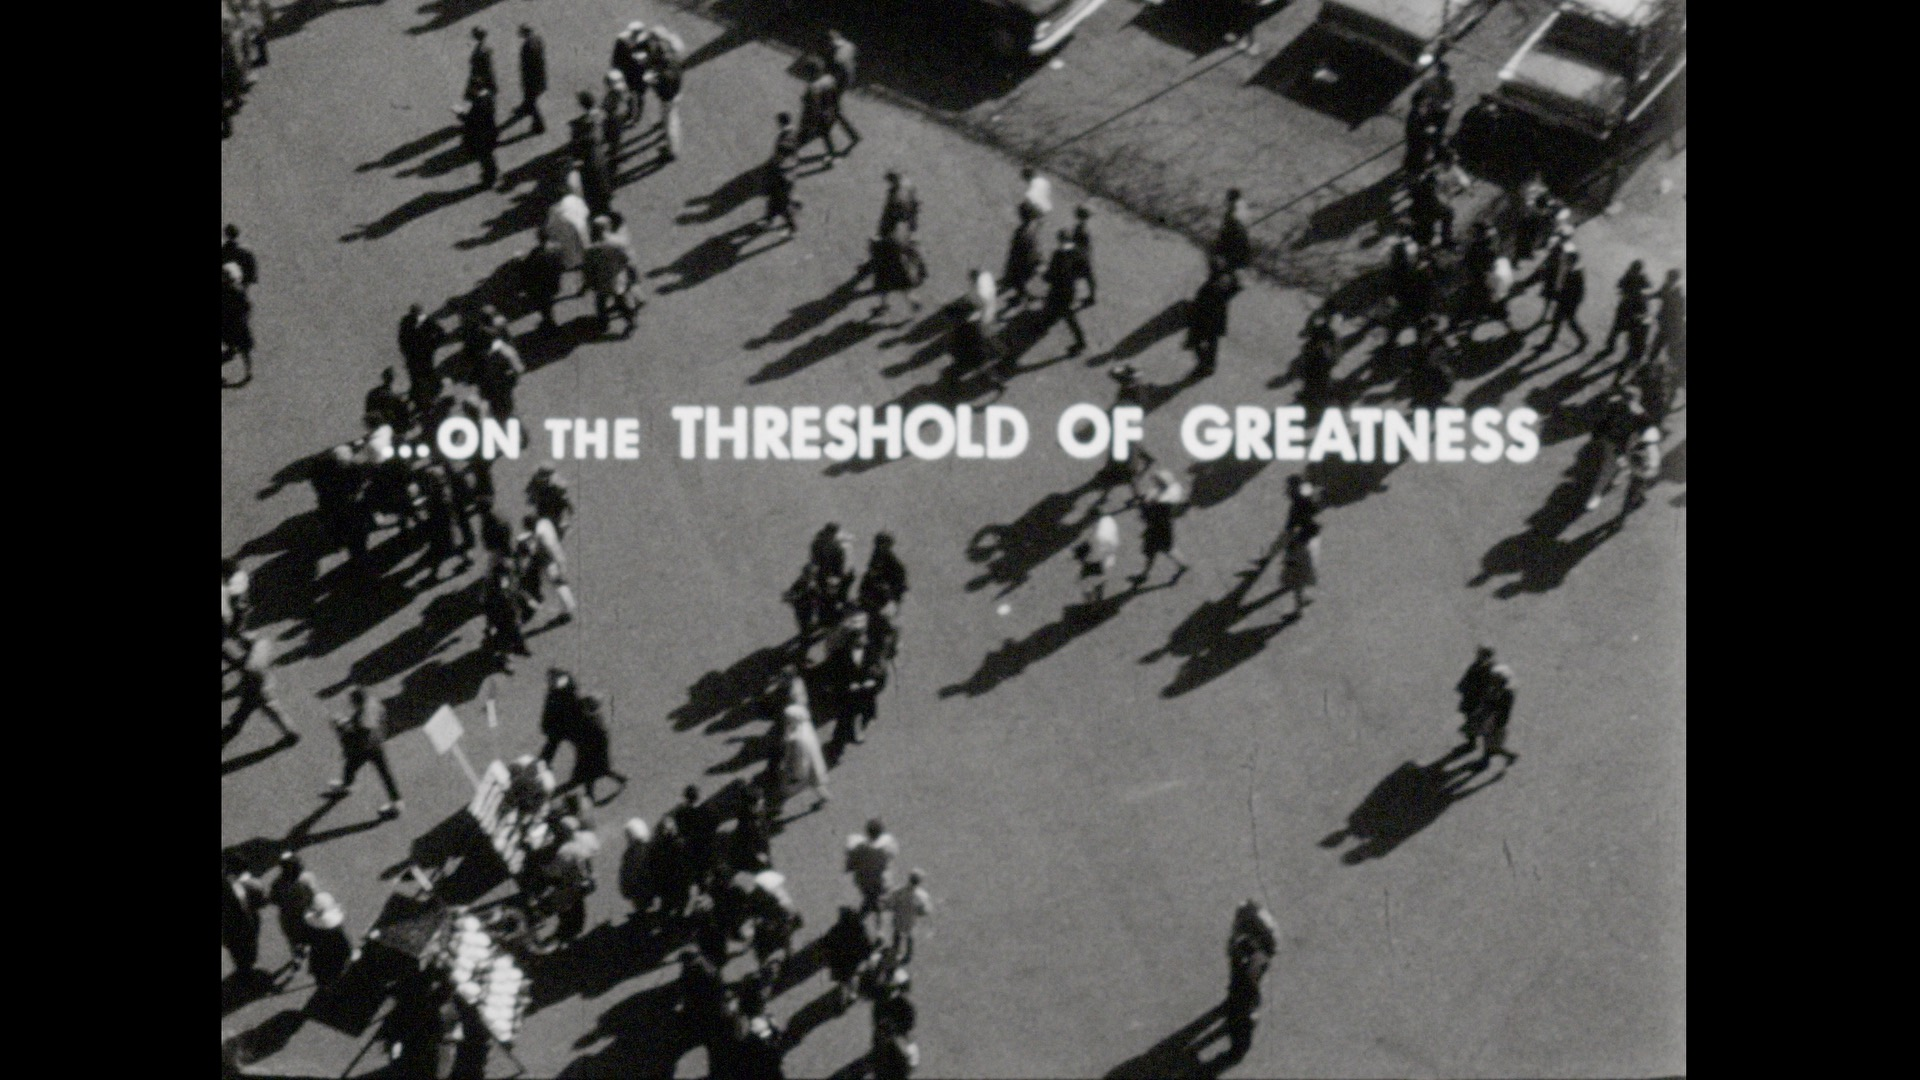 On the Threshold of Greatness, 1964-1965